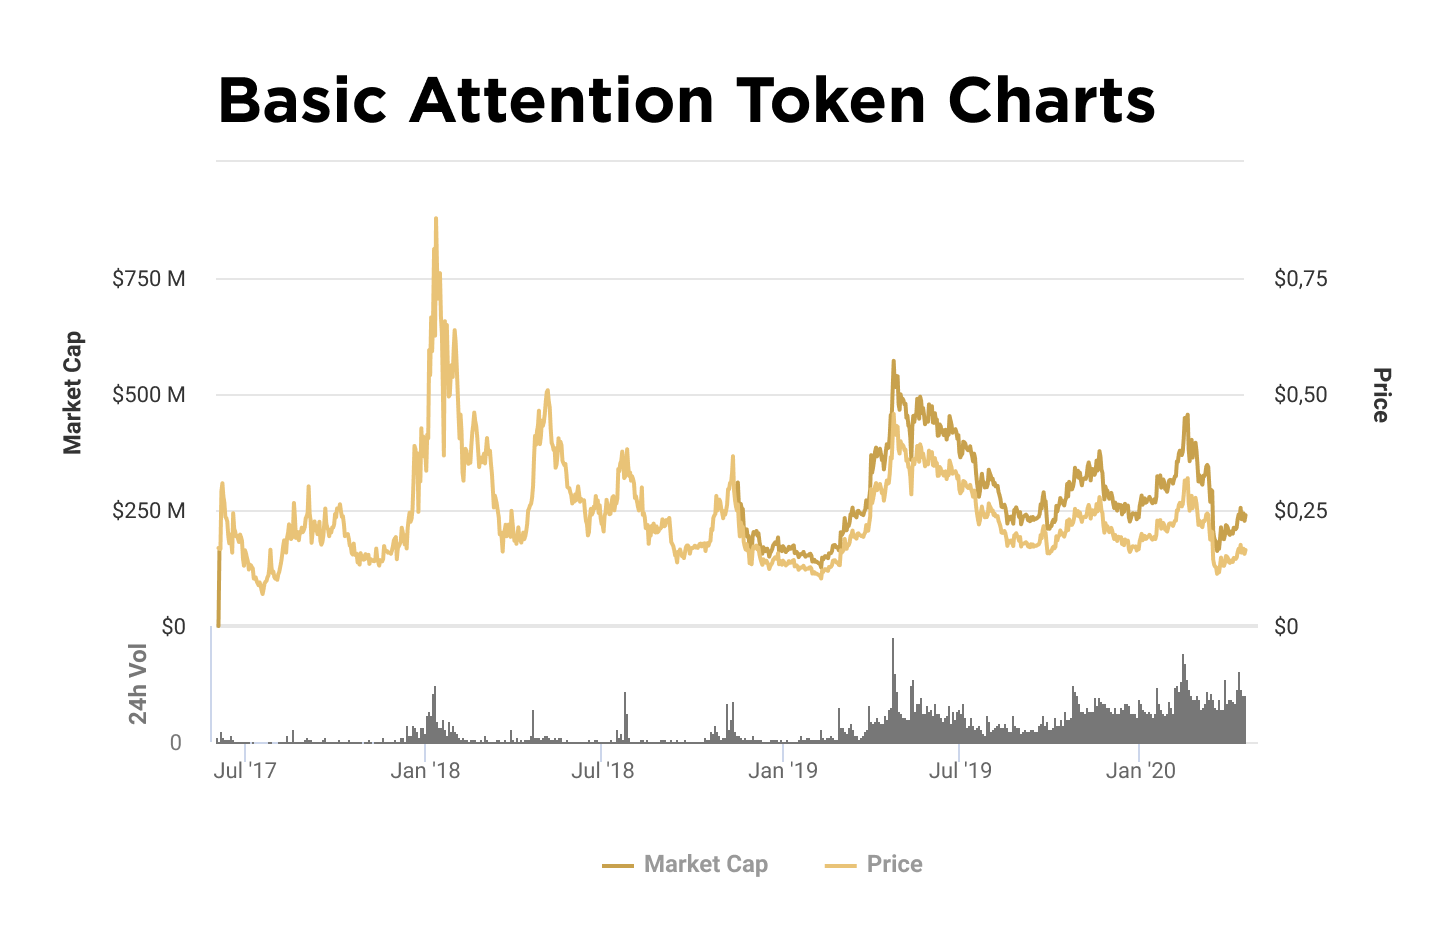 Charts of capitalization and value of BAT token